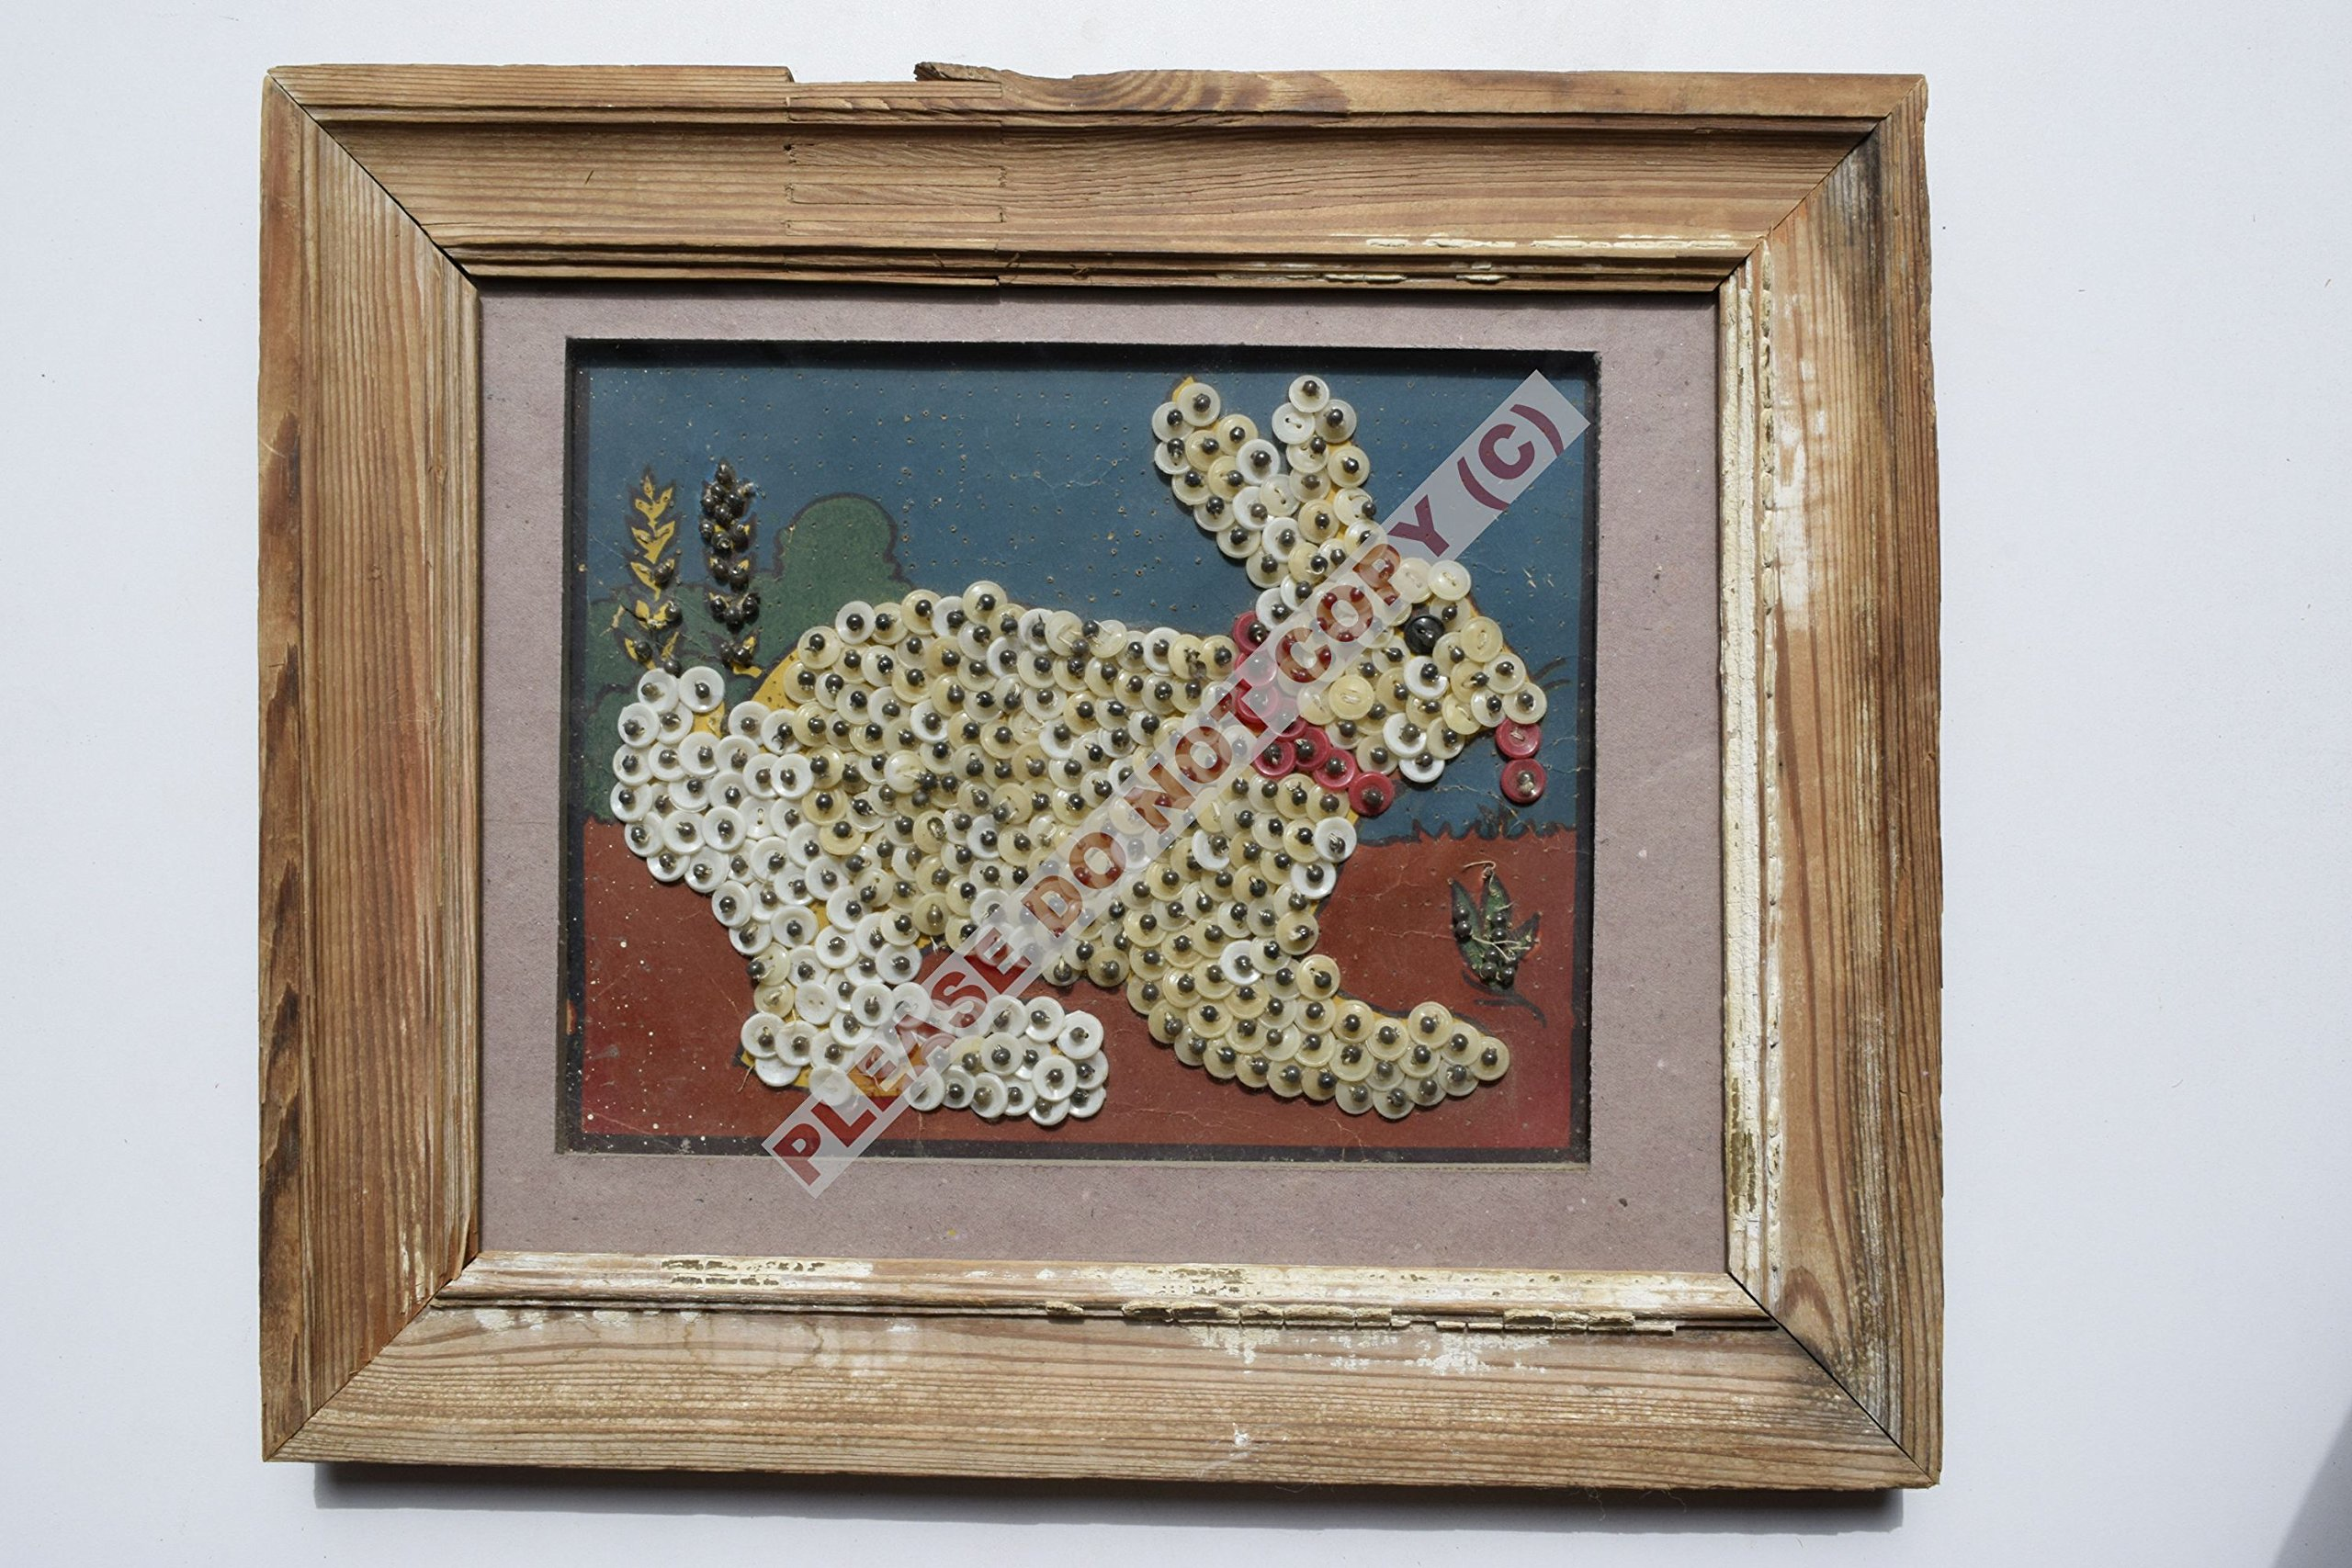 Rare Collectible Antique Old Collectible Handmade Craft Rabbit in Old Vintage Wooden Frame India